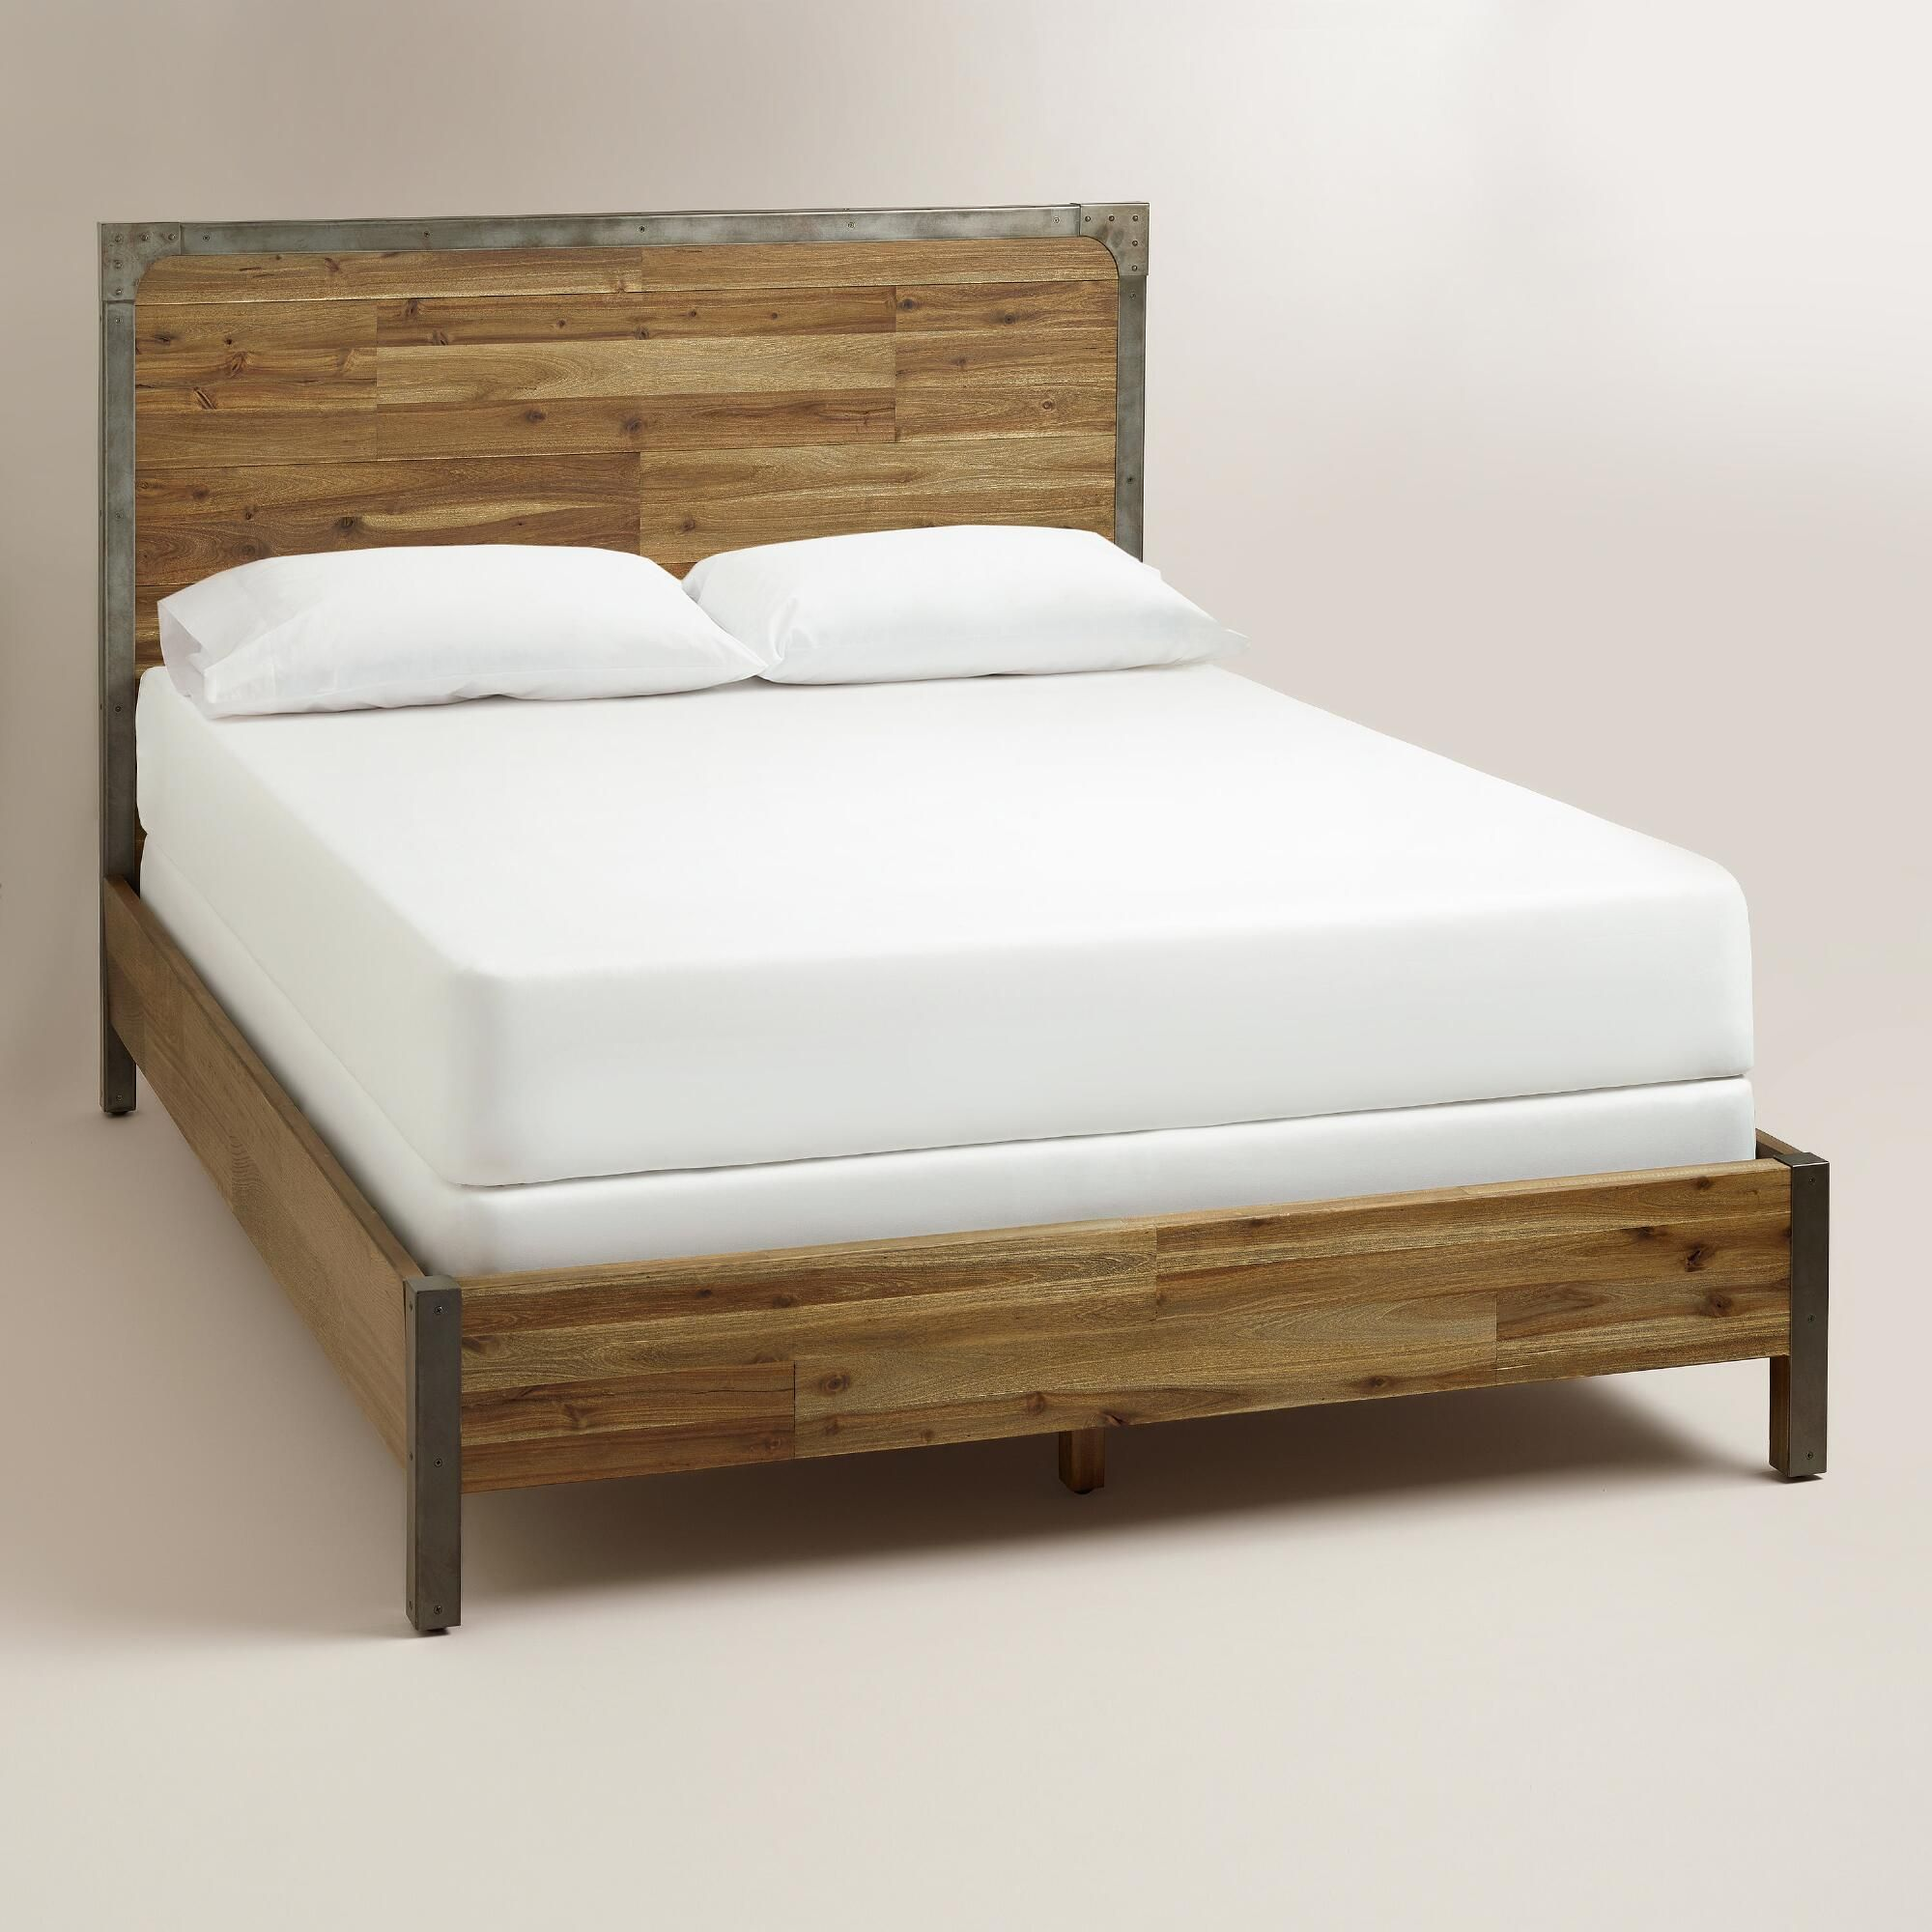 Combining Rustic Wood Construction With Metal Accents Our Aiden Queen Bed Is A Stunning Bedroom Center Bed Frame And Headboard Cheap Bed Frame Queen Bed Frame